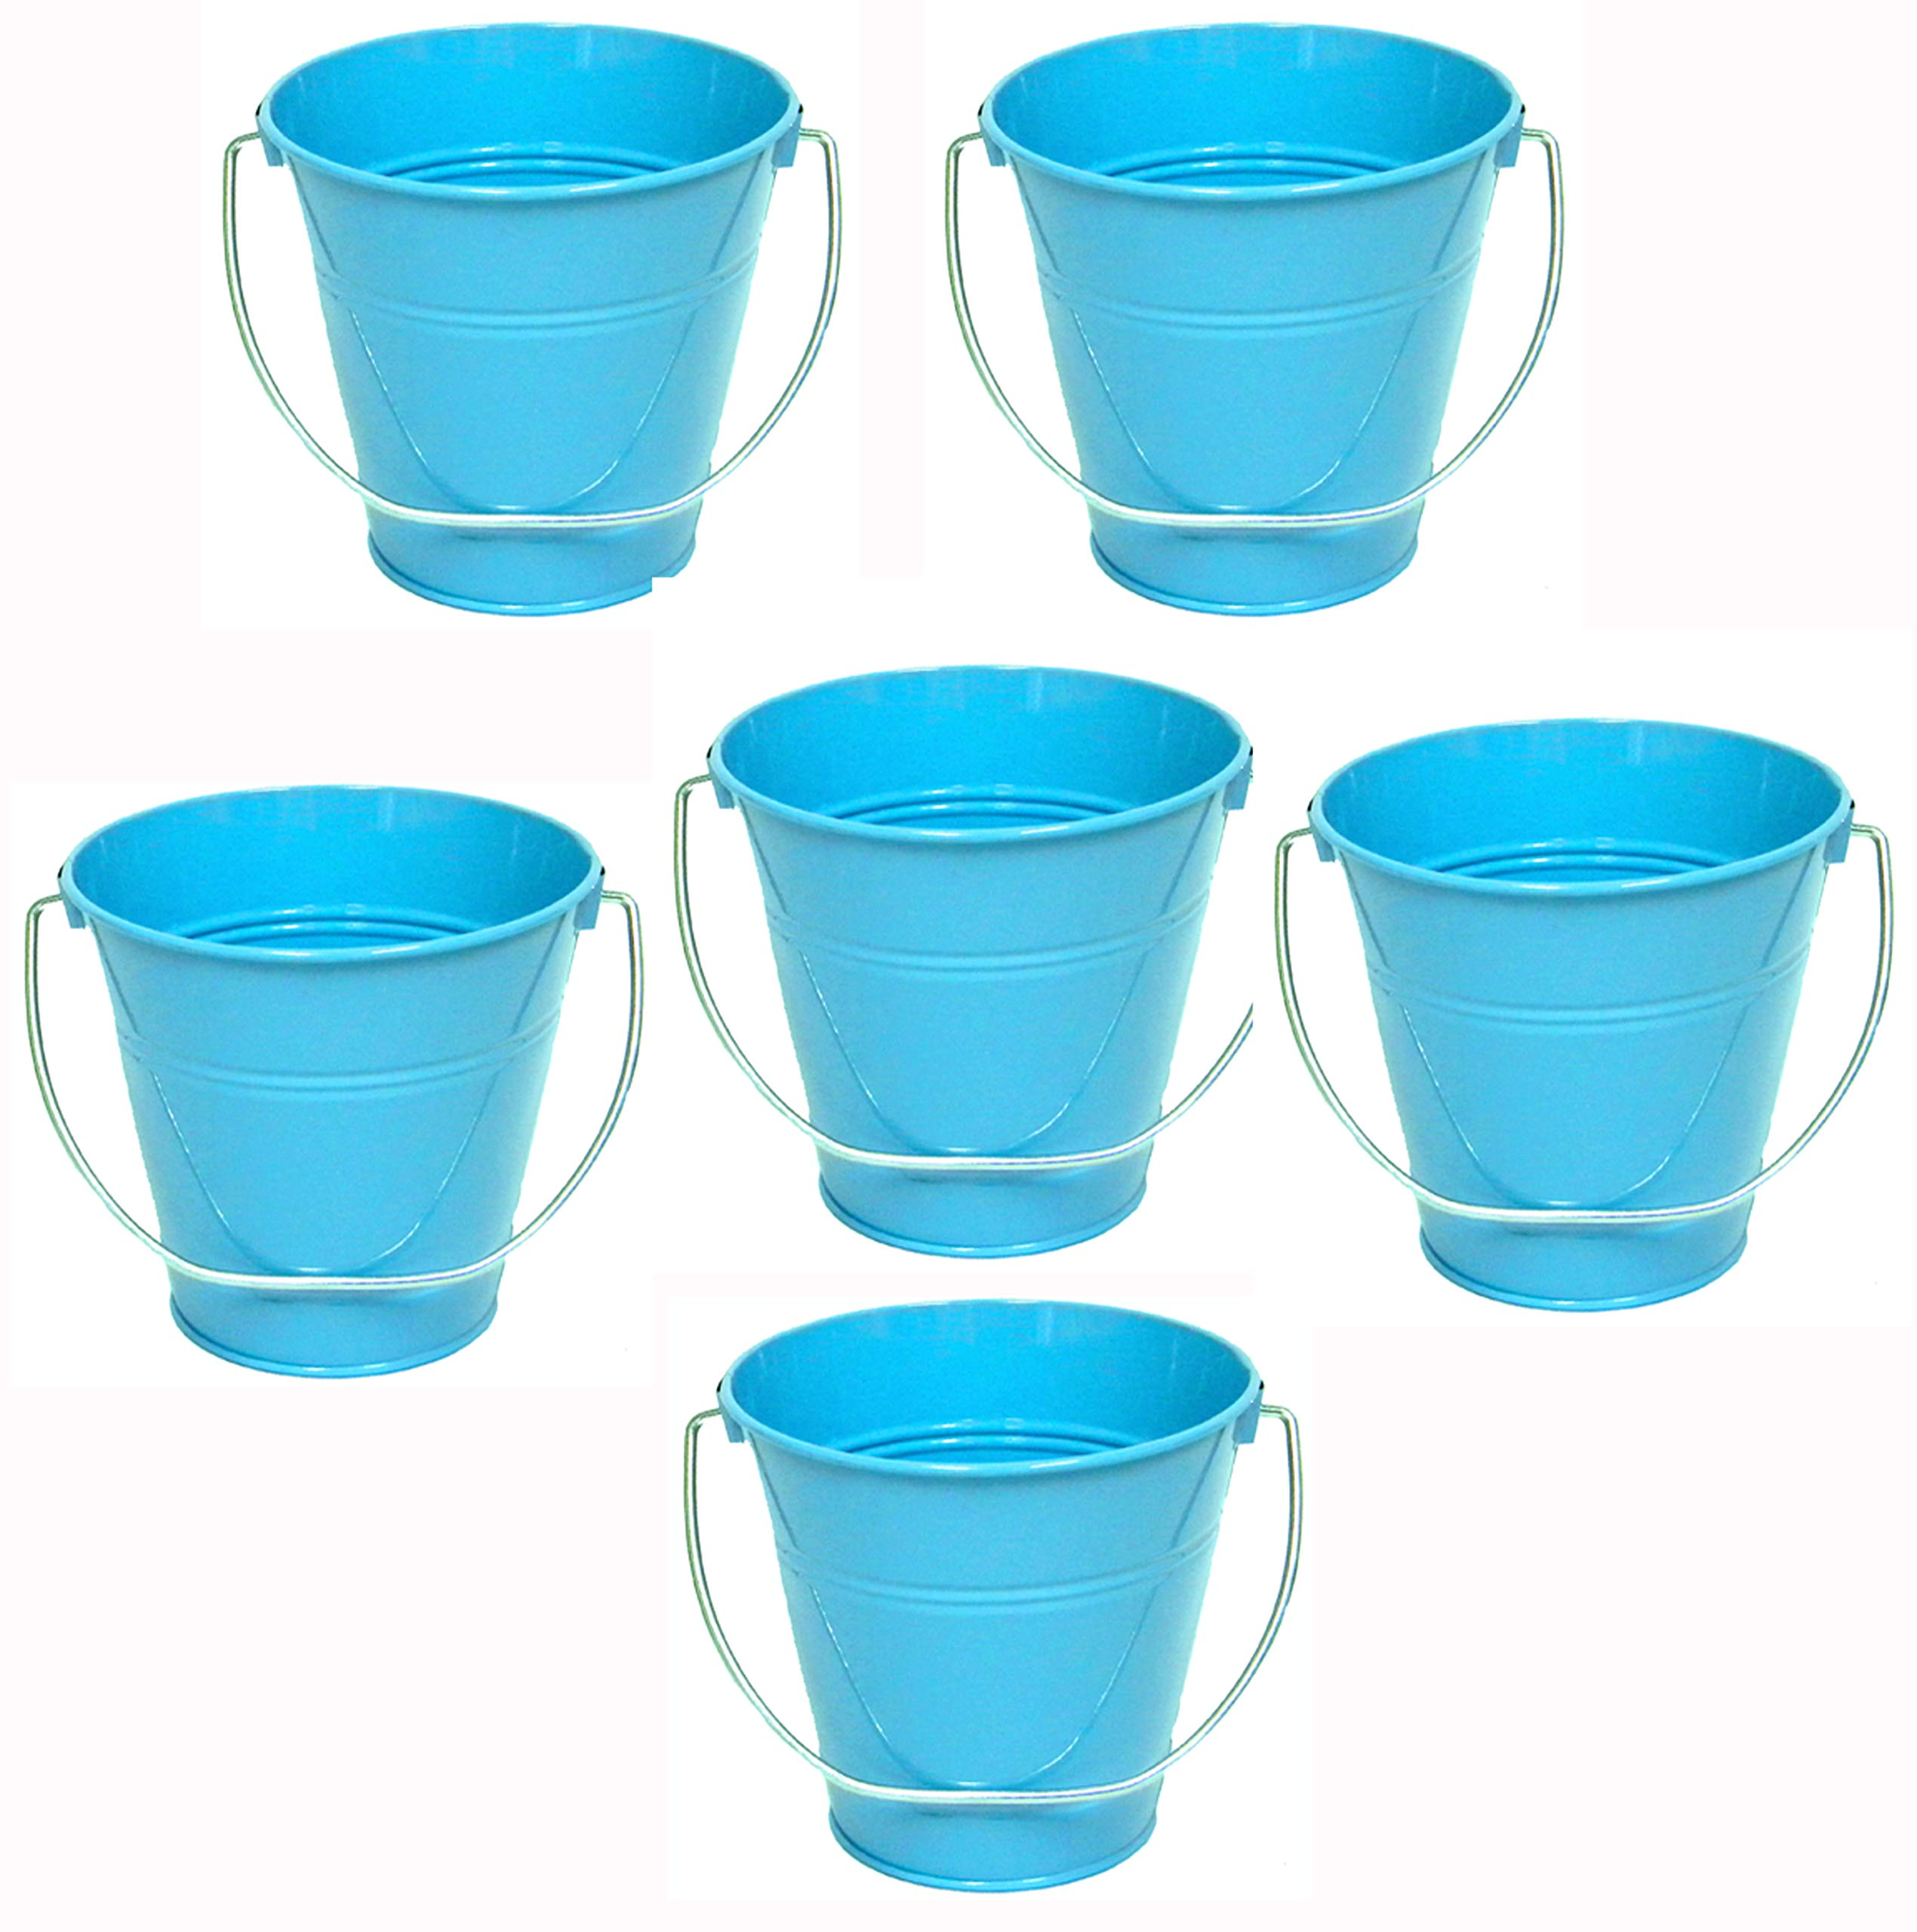 Italia 6-Pack Metal Bucket color Turquoise Size 7.5 x